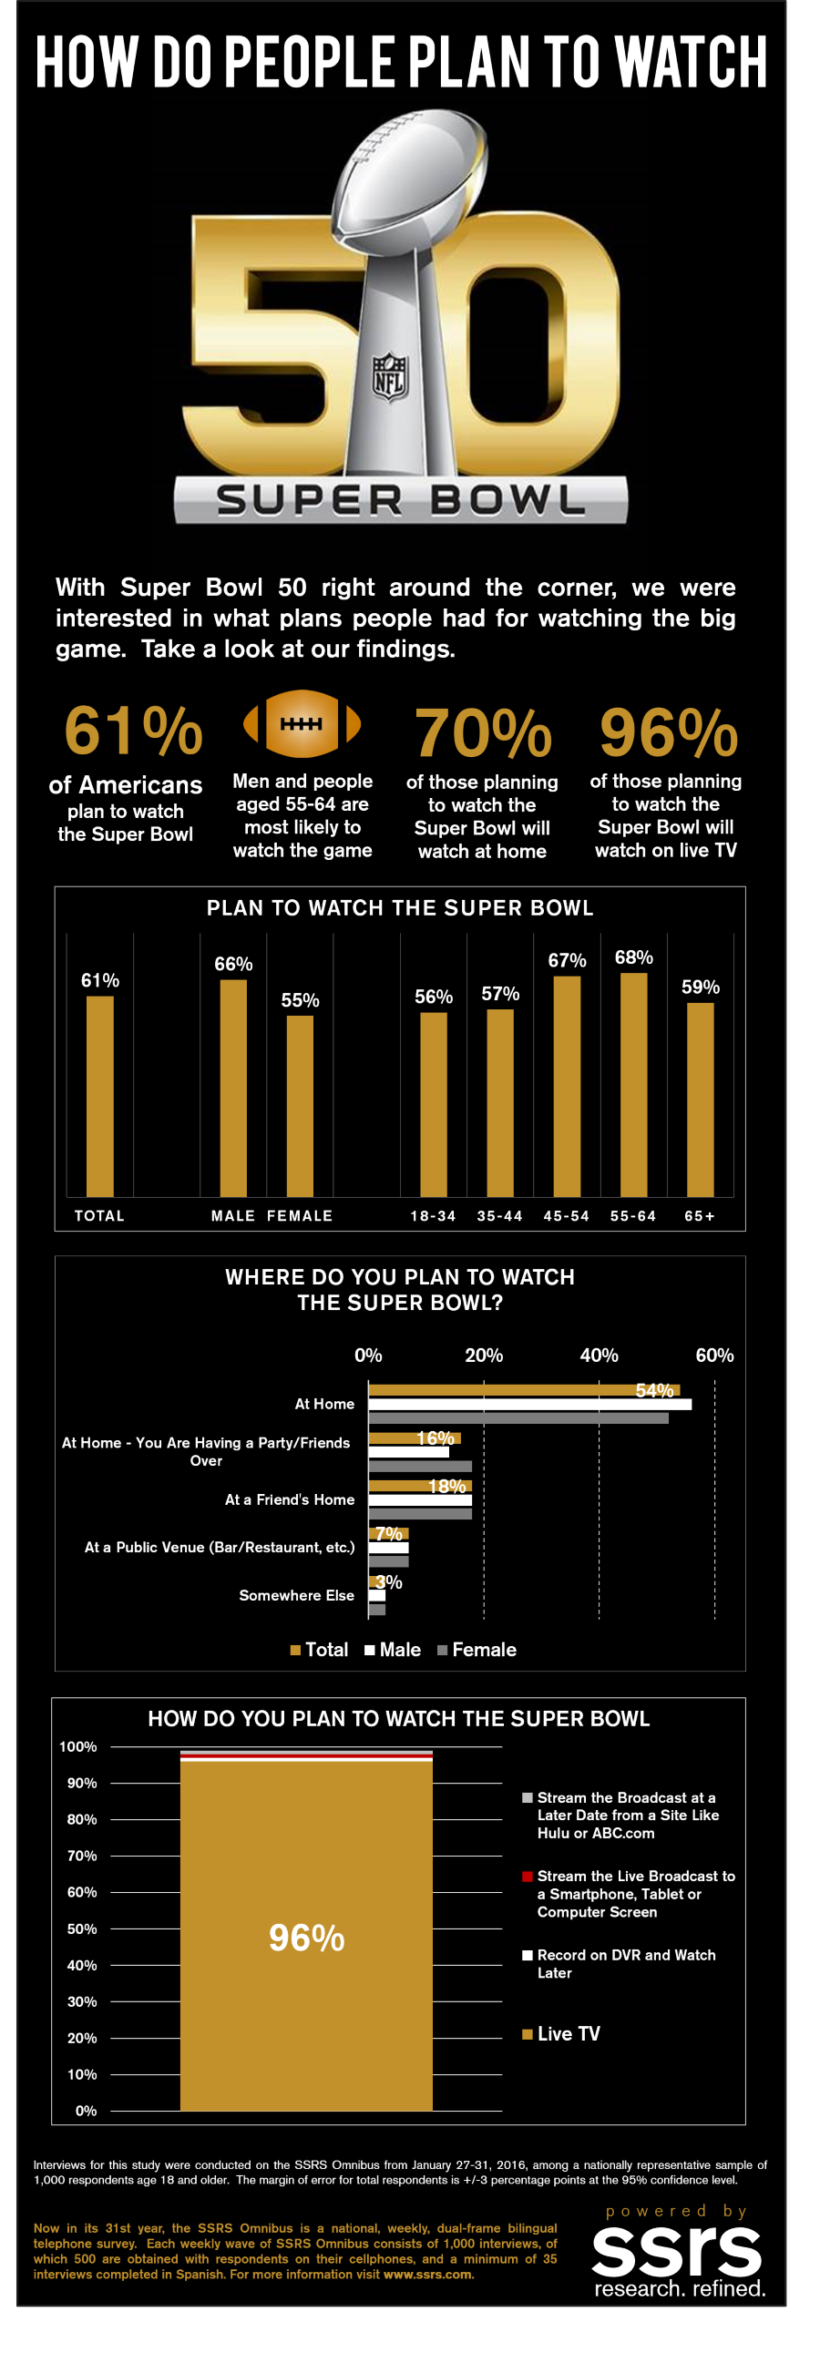 How Do People Plan to Watch Super Bowl 50?